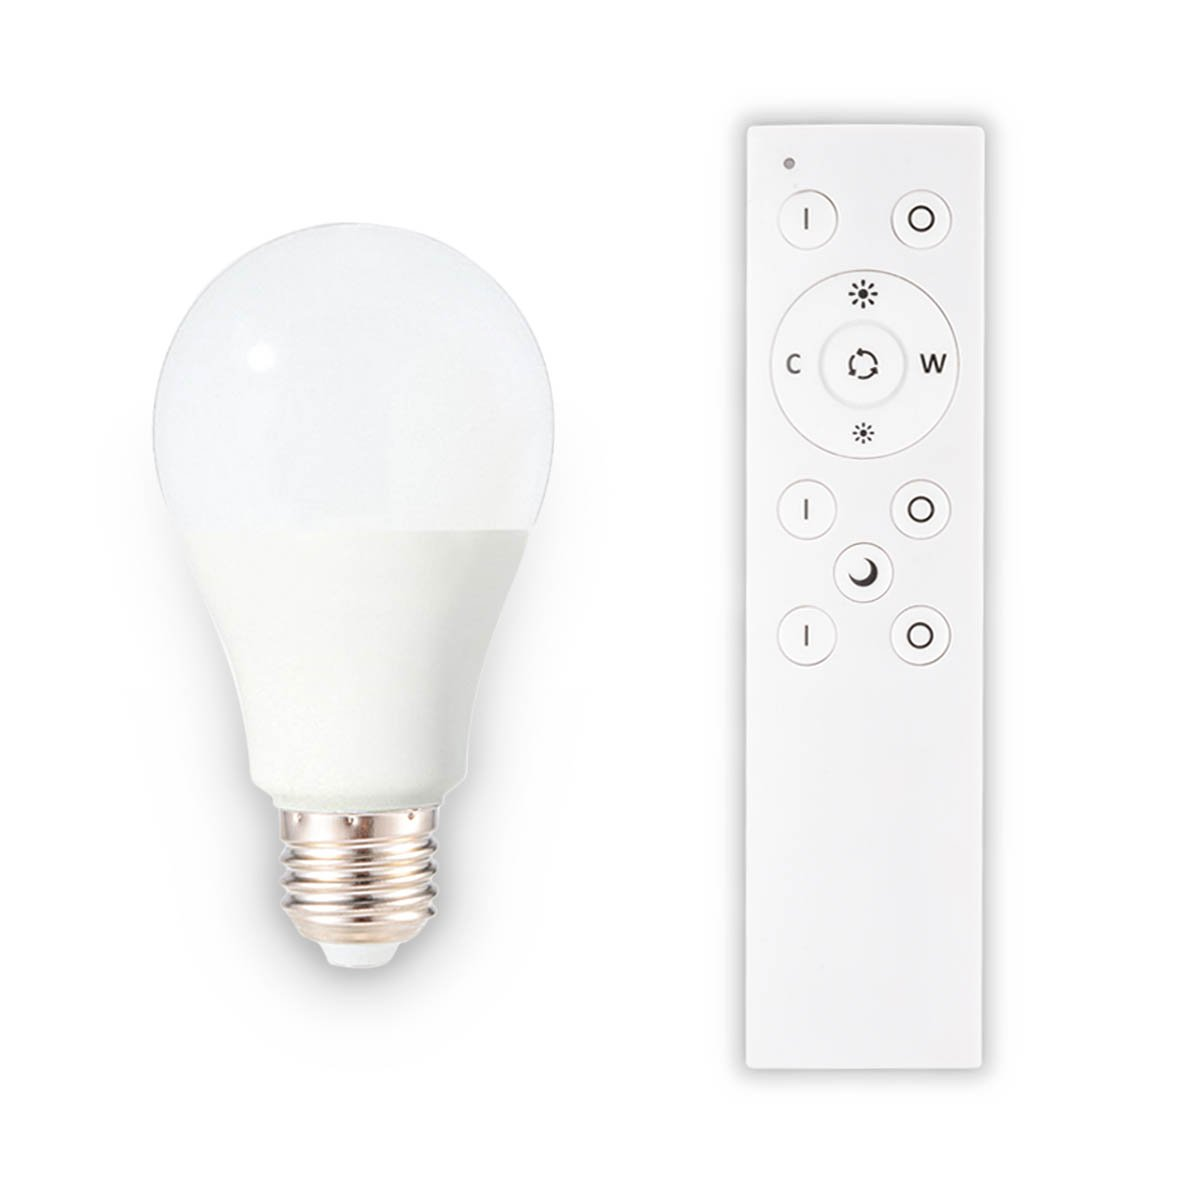 Sunix Dimmable LED Light Bulb and Remote Controller, Brightness and Temperature Adjustable